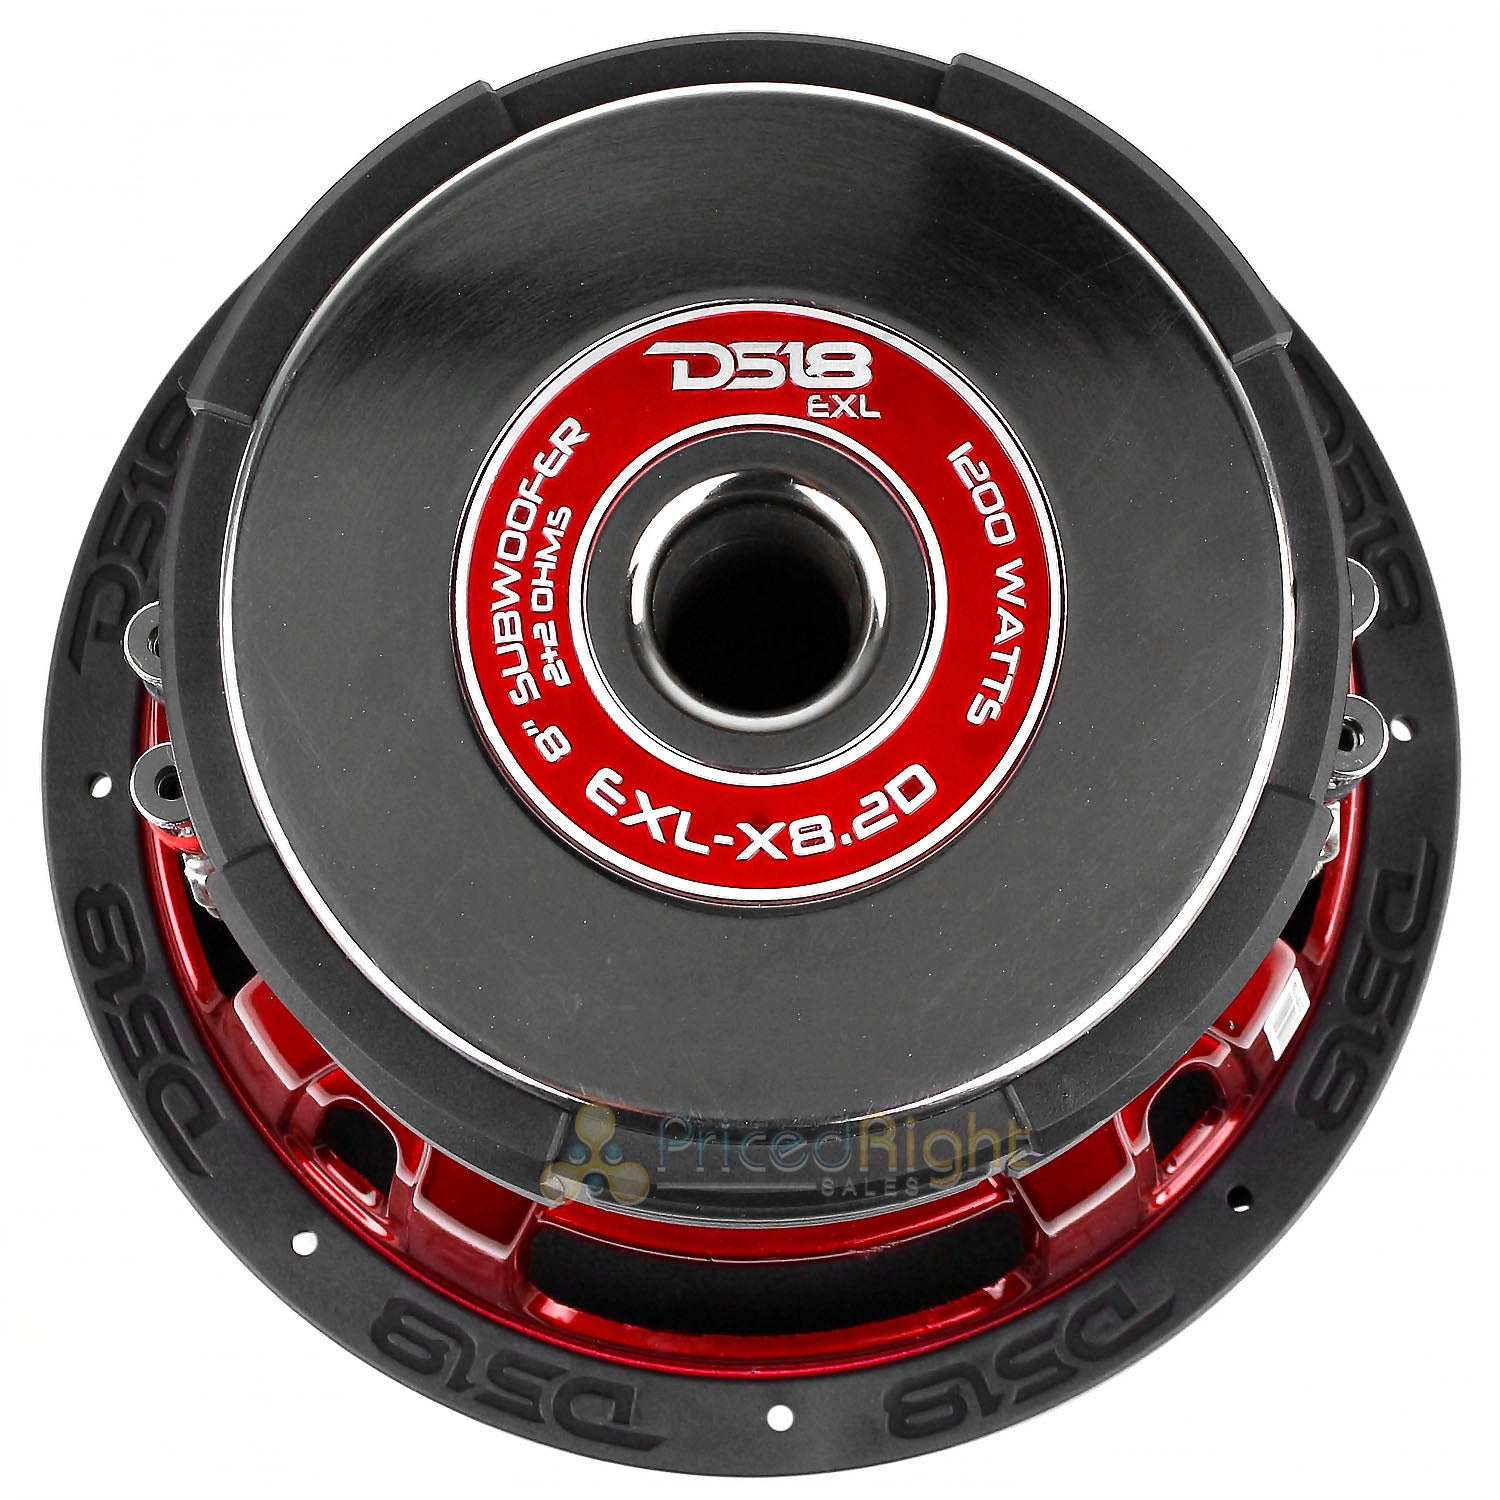 "2 Pack EXL-X8.2D 8"" Subwoofers Dual 2 Ohm 1200 Watts Max Bass Sub Car DS18"